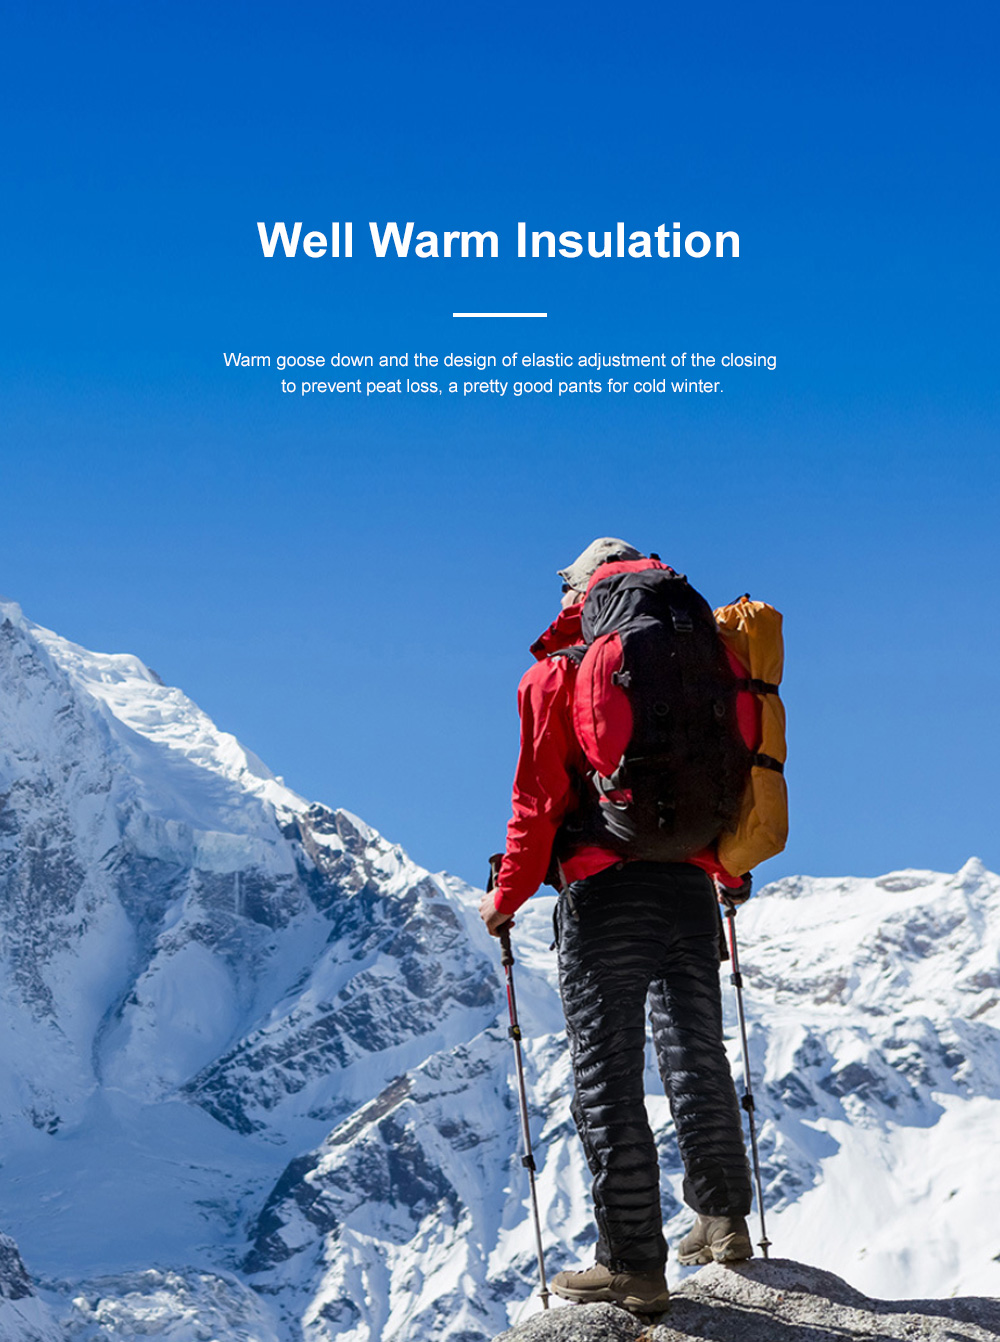 NH 95% Goose Down Pants Windproof and Water-Resistant Insulated Snow Trousers for Winter Outdoor Sport 2